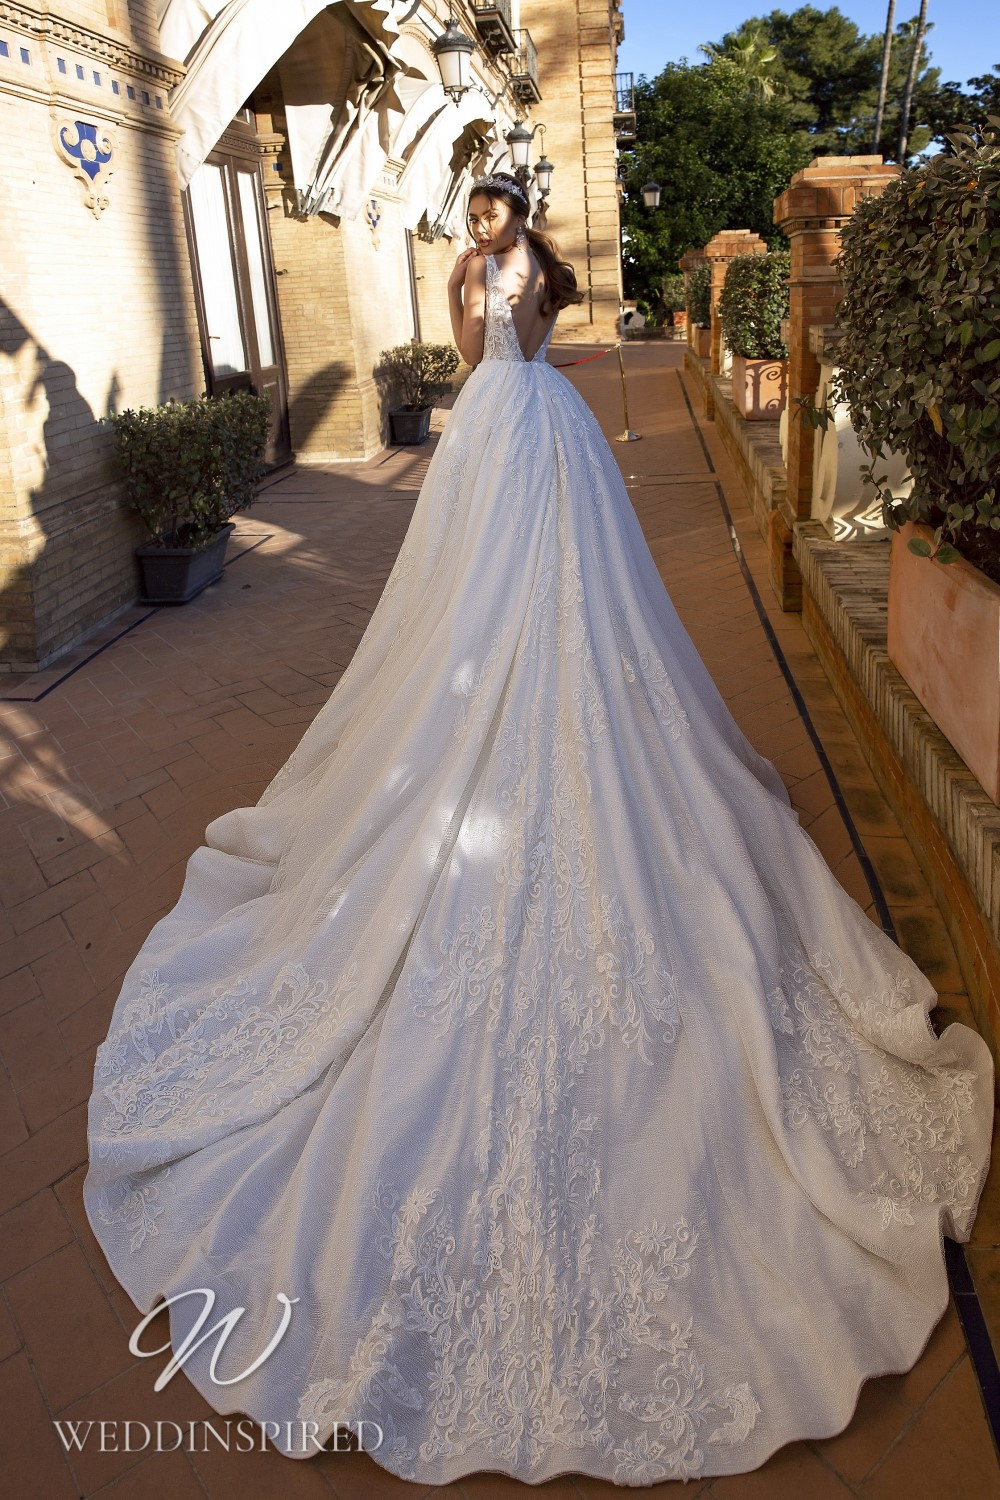 A Maks Mariano lace princess wedding dress with a low back